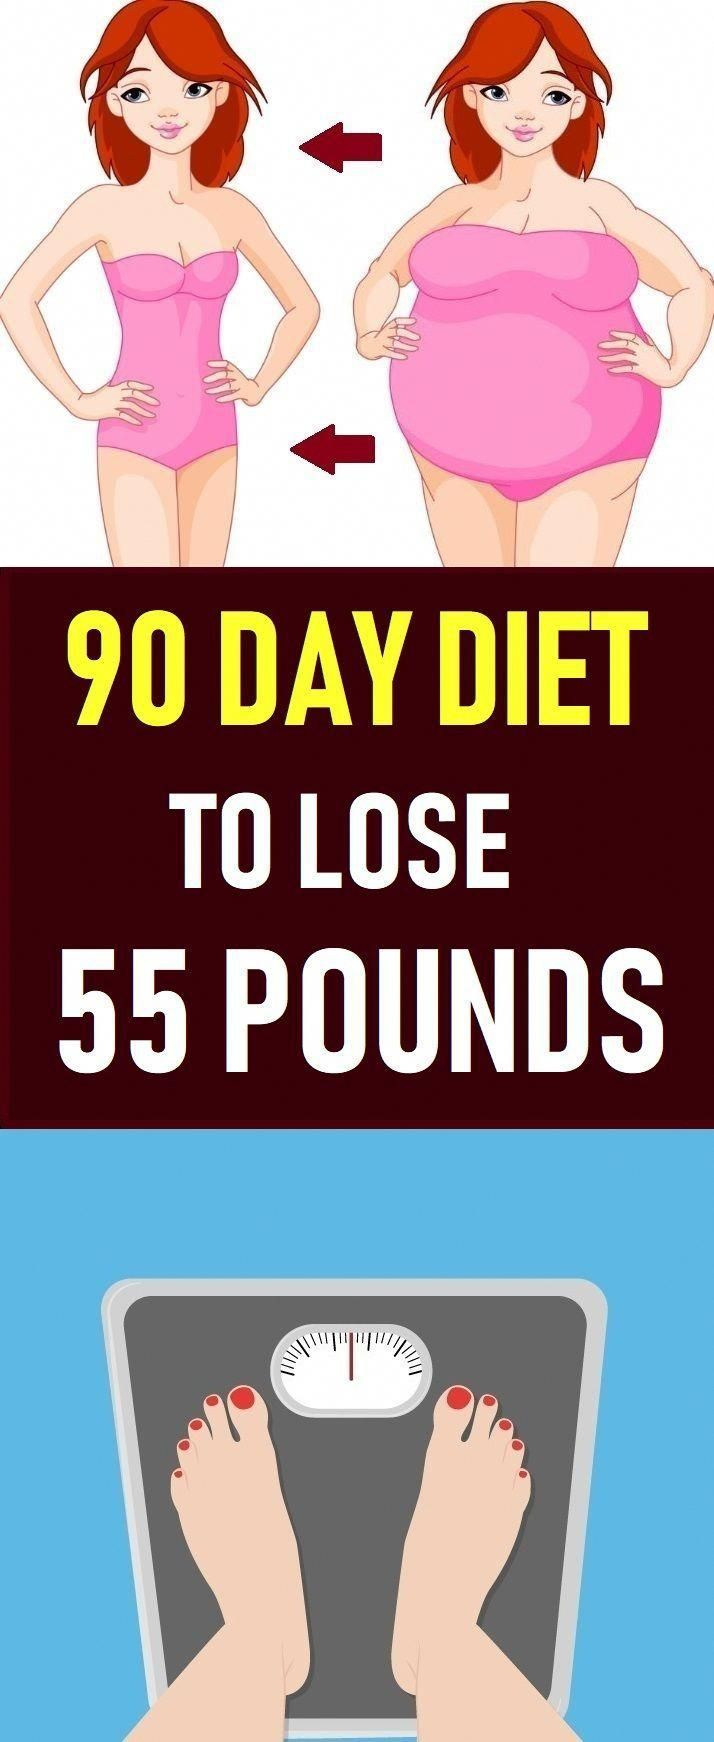 Homemade tips for fast weight loss   diet tips to reduce weighthealthyeating